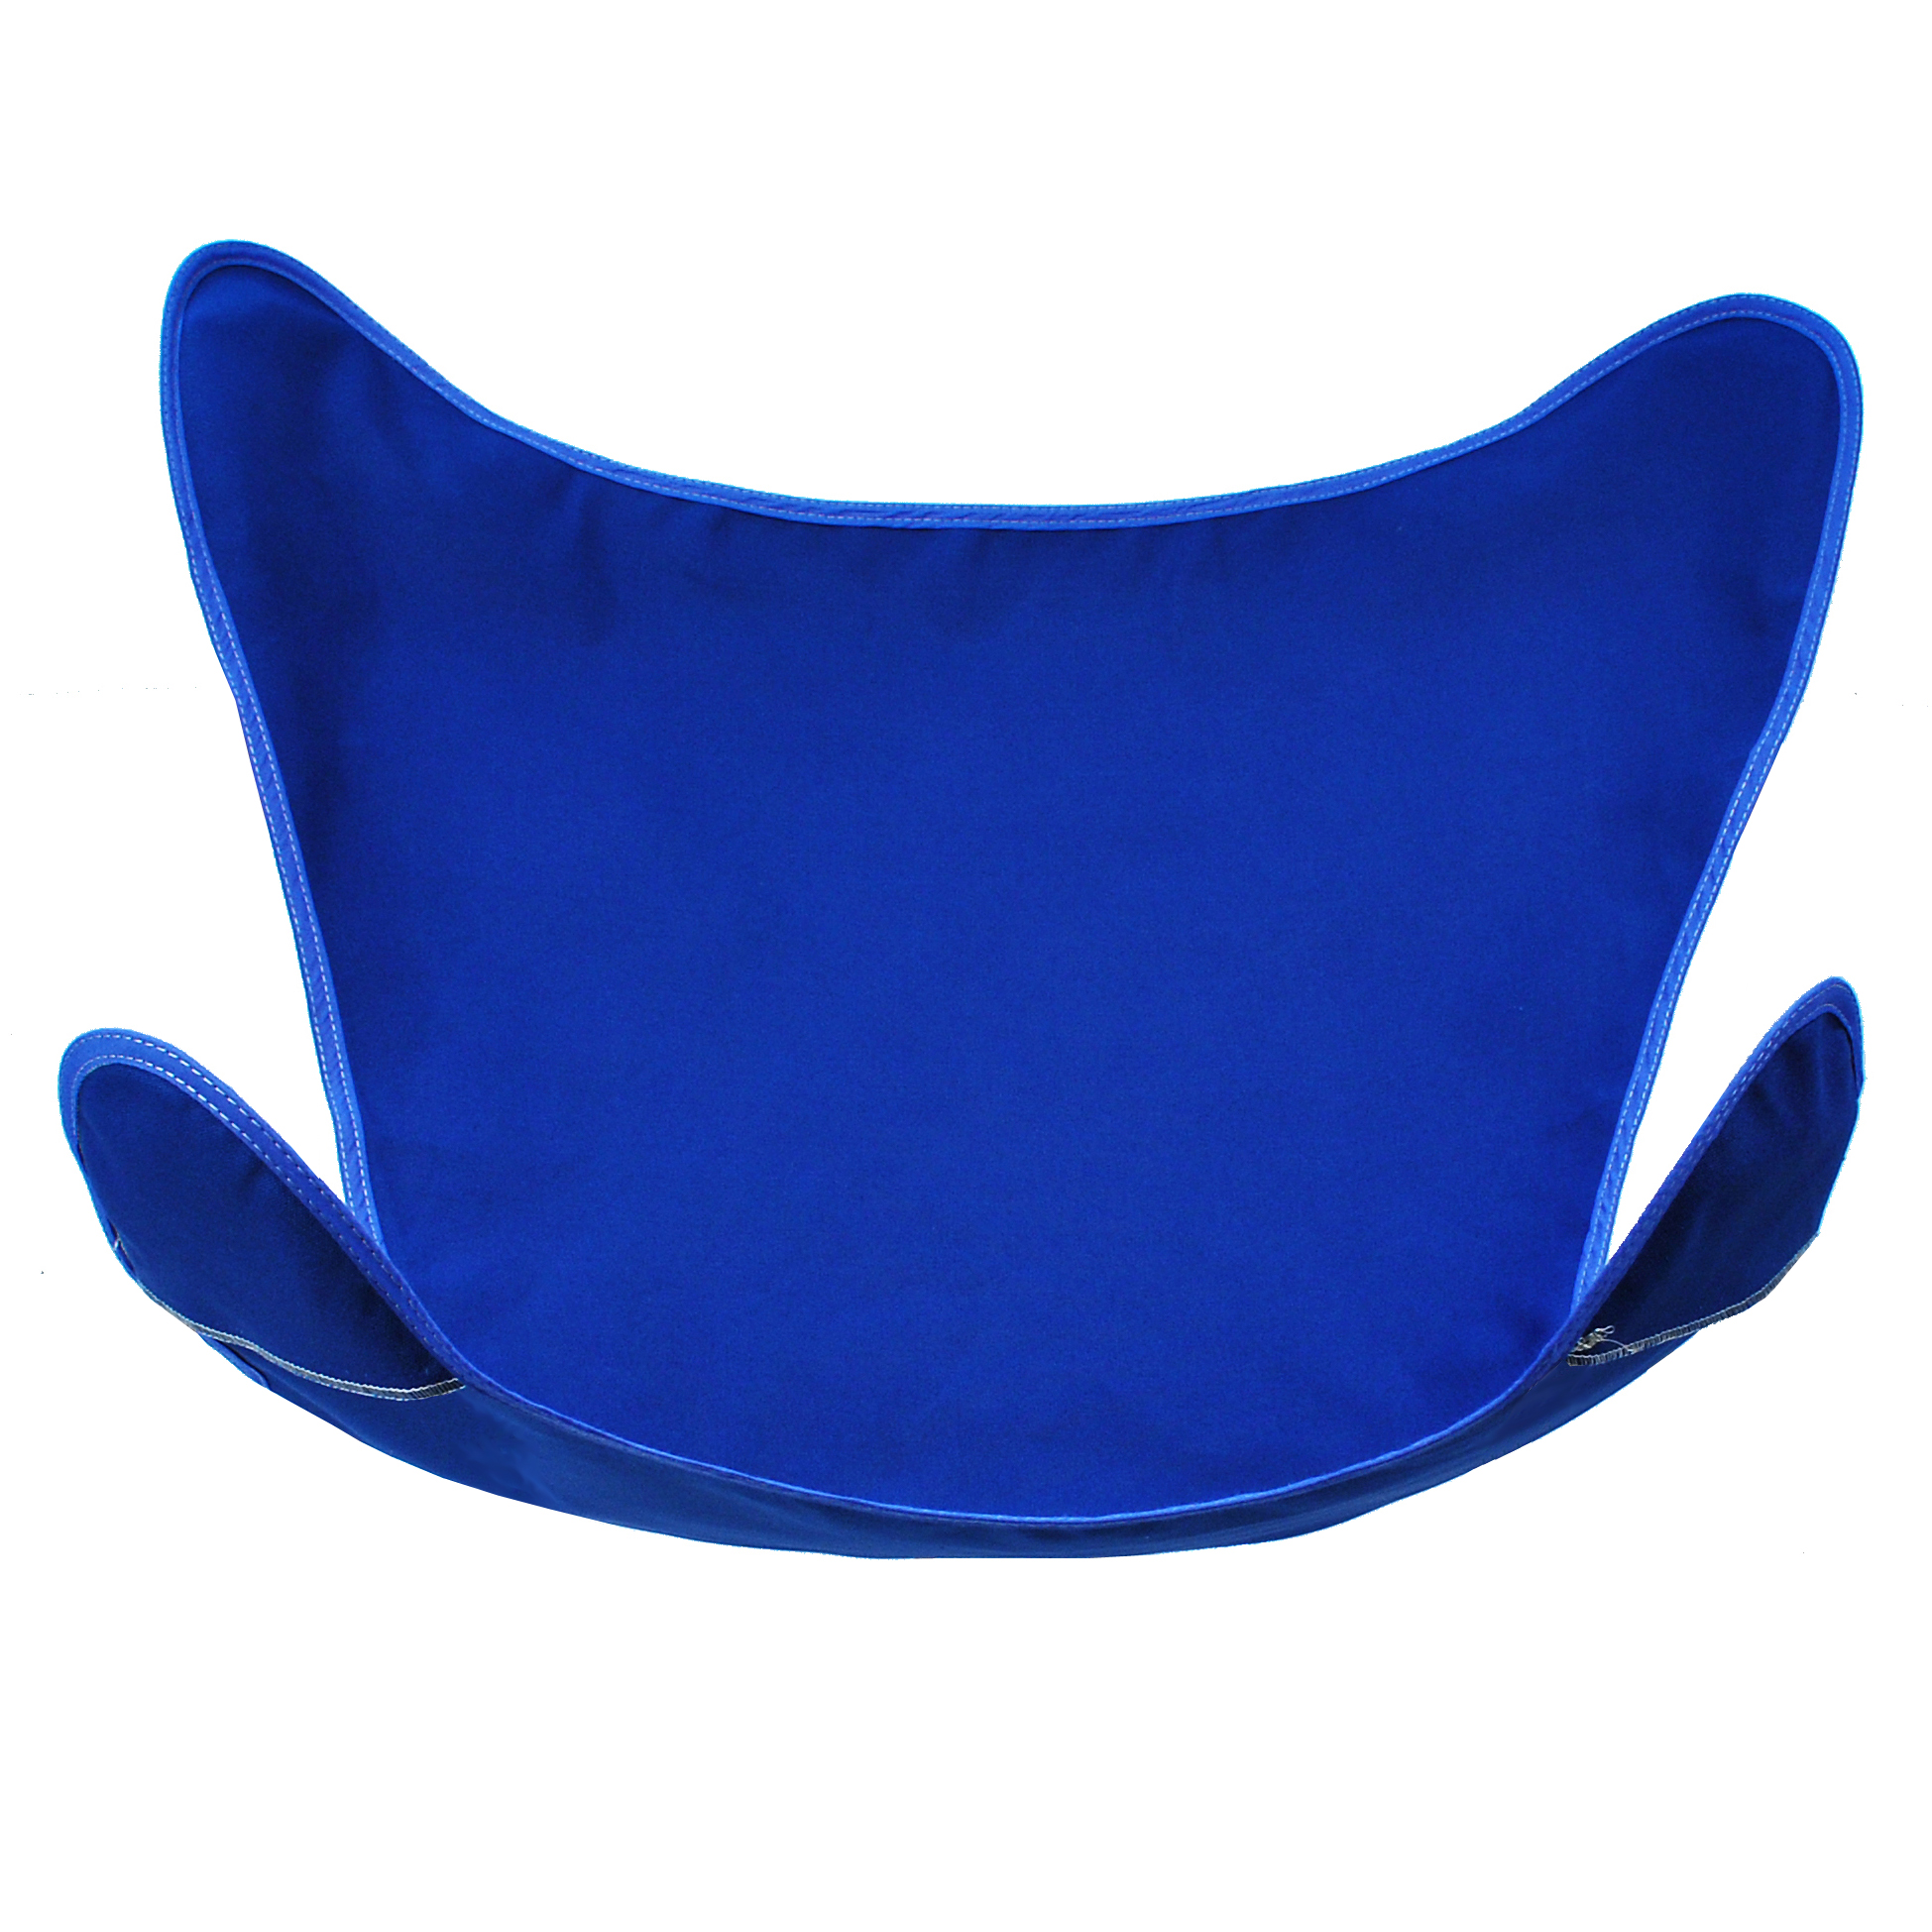 Replacement Cover for Butterfly Chair - Royal Blue